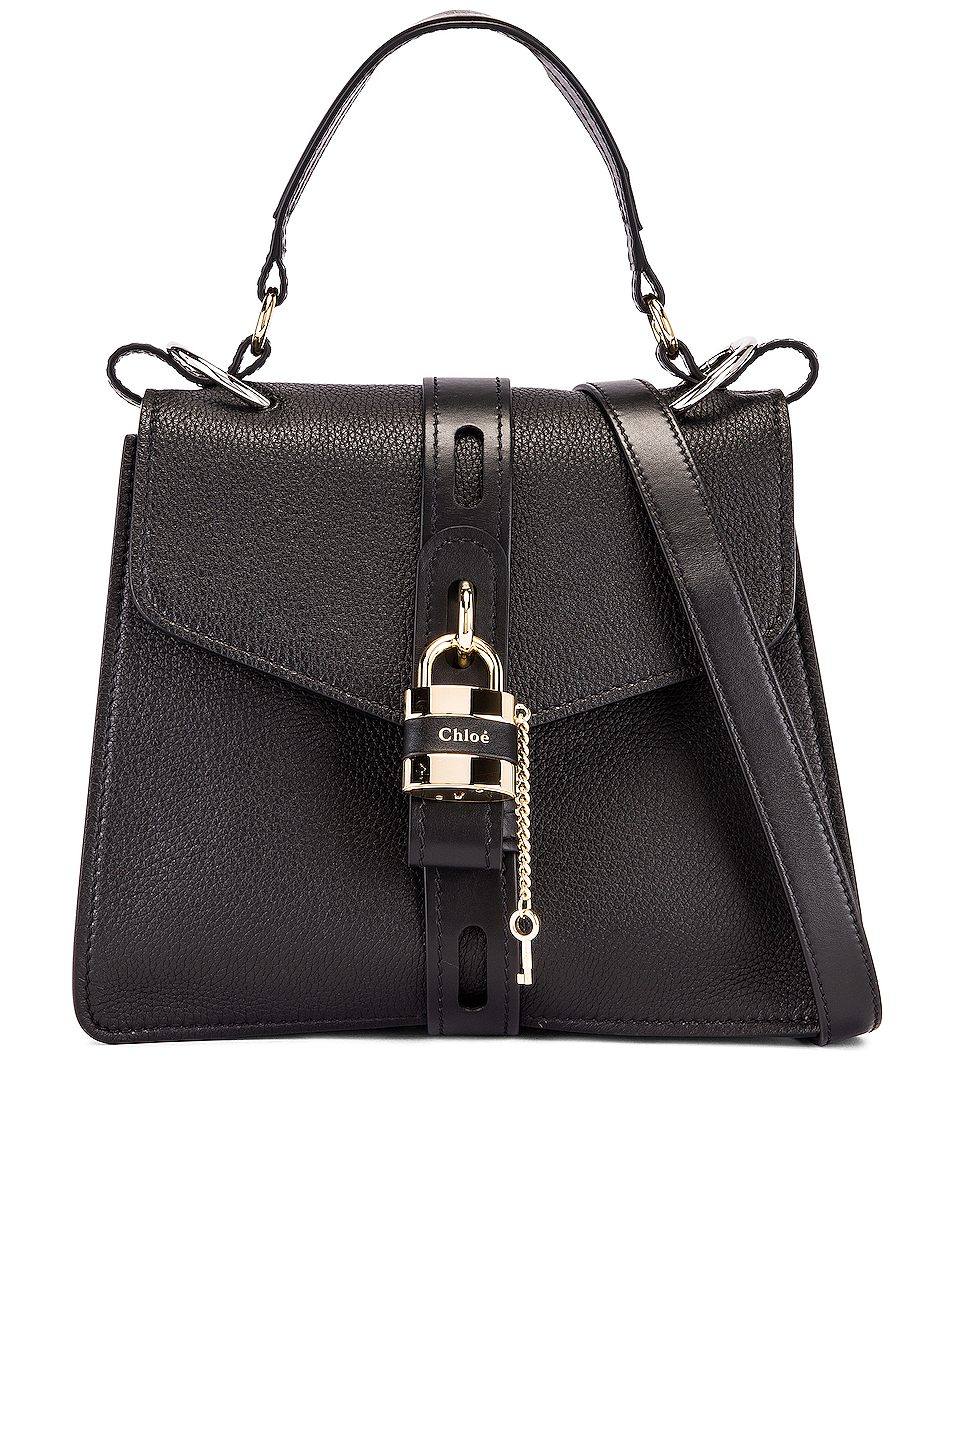 Chloe Medium Aby Leather Bag